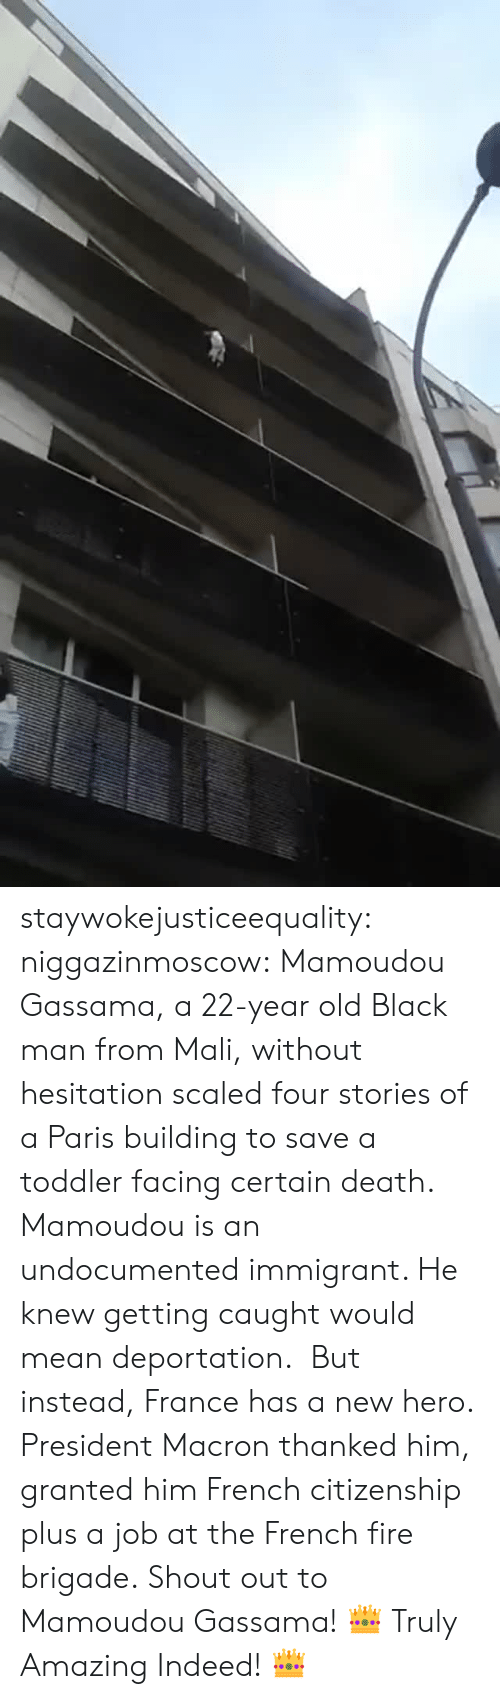 Deportation: staywokejusticeequality:  niggazinmoscow:  Mamoudou Gassama, a 22-year old Black man from Mali, without hesitation   scaled four stories of a Paris building to save a toddler facing certain death. Mamoudou is an undocumented immigrant. He knew getting caught would mean deportation. But instead, France has a new hero. President Macron thanked him, granted him French citizenship plus a job at the French fire brigade. Shout out to Mamoudou Gassama!    👑 Truly Amazing Indeed! 👑